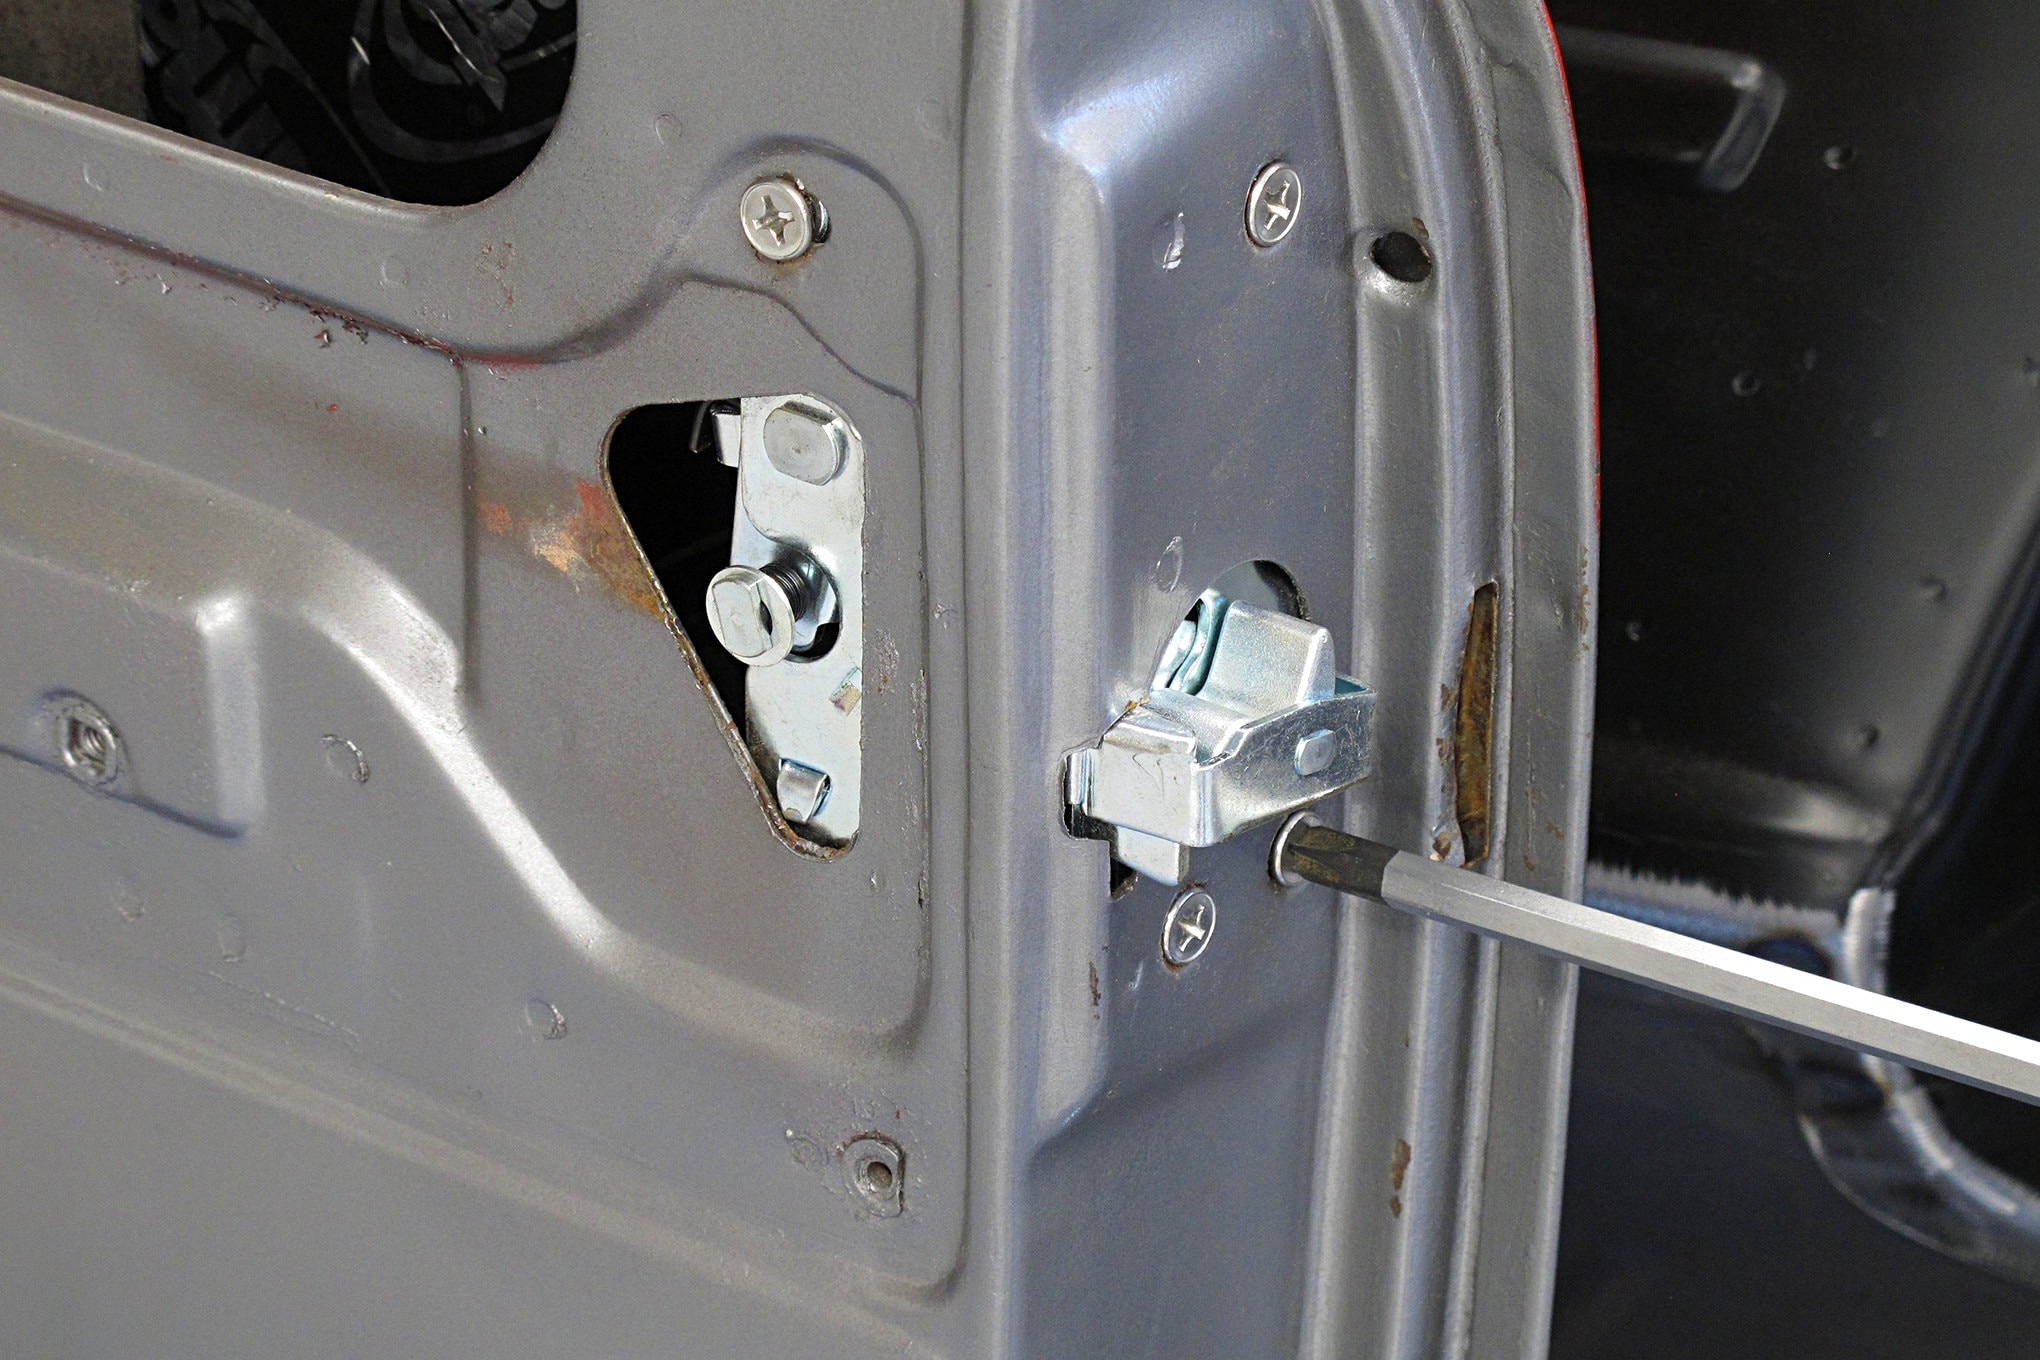 OEM-style replacement screws were used to secure the new latches to the doors.